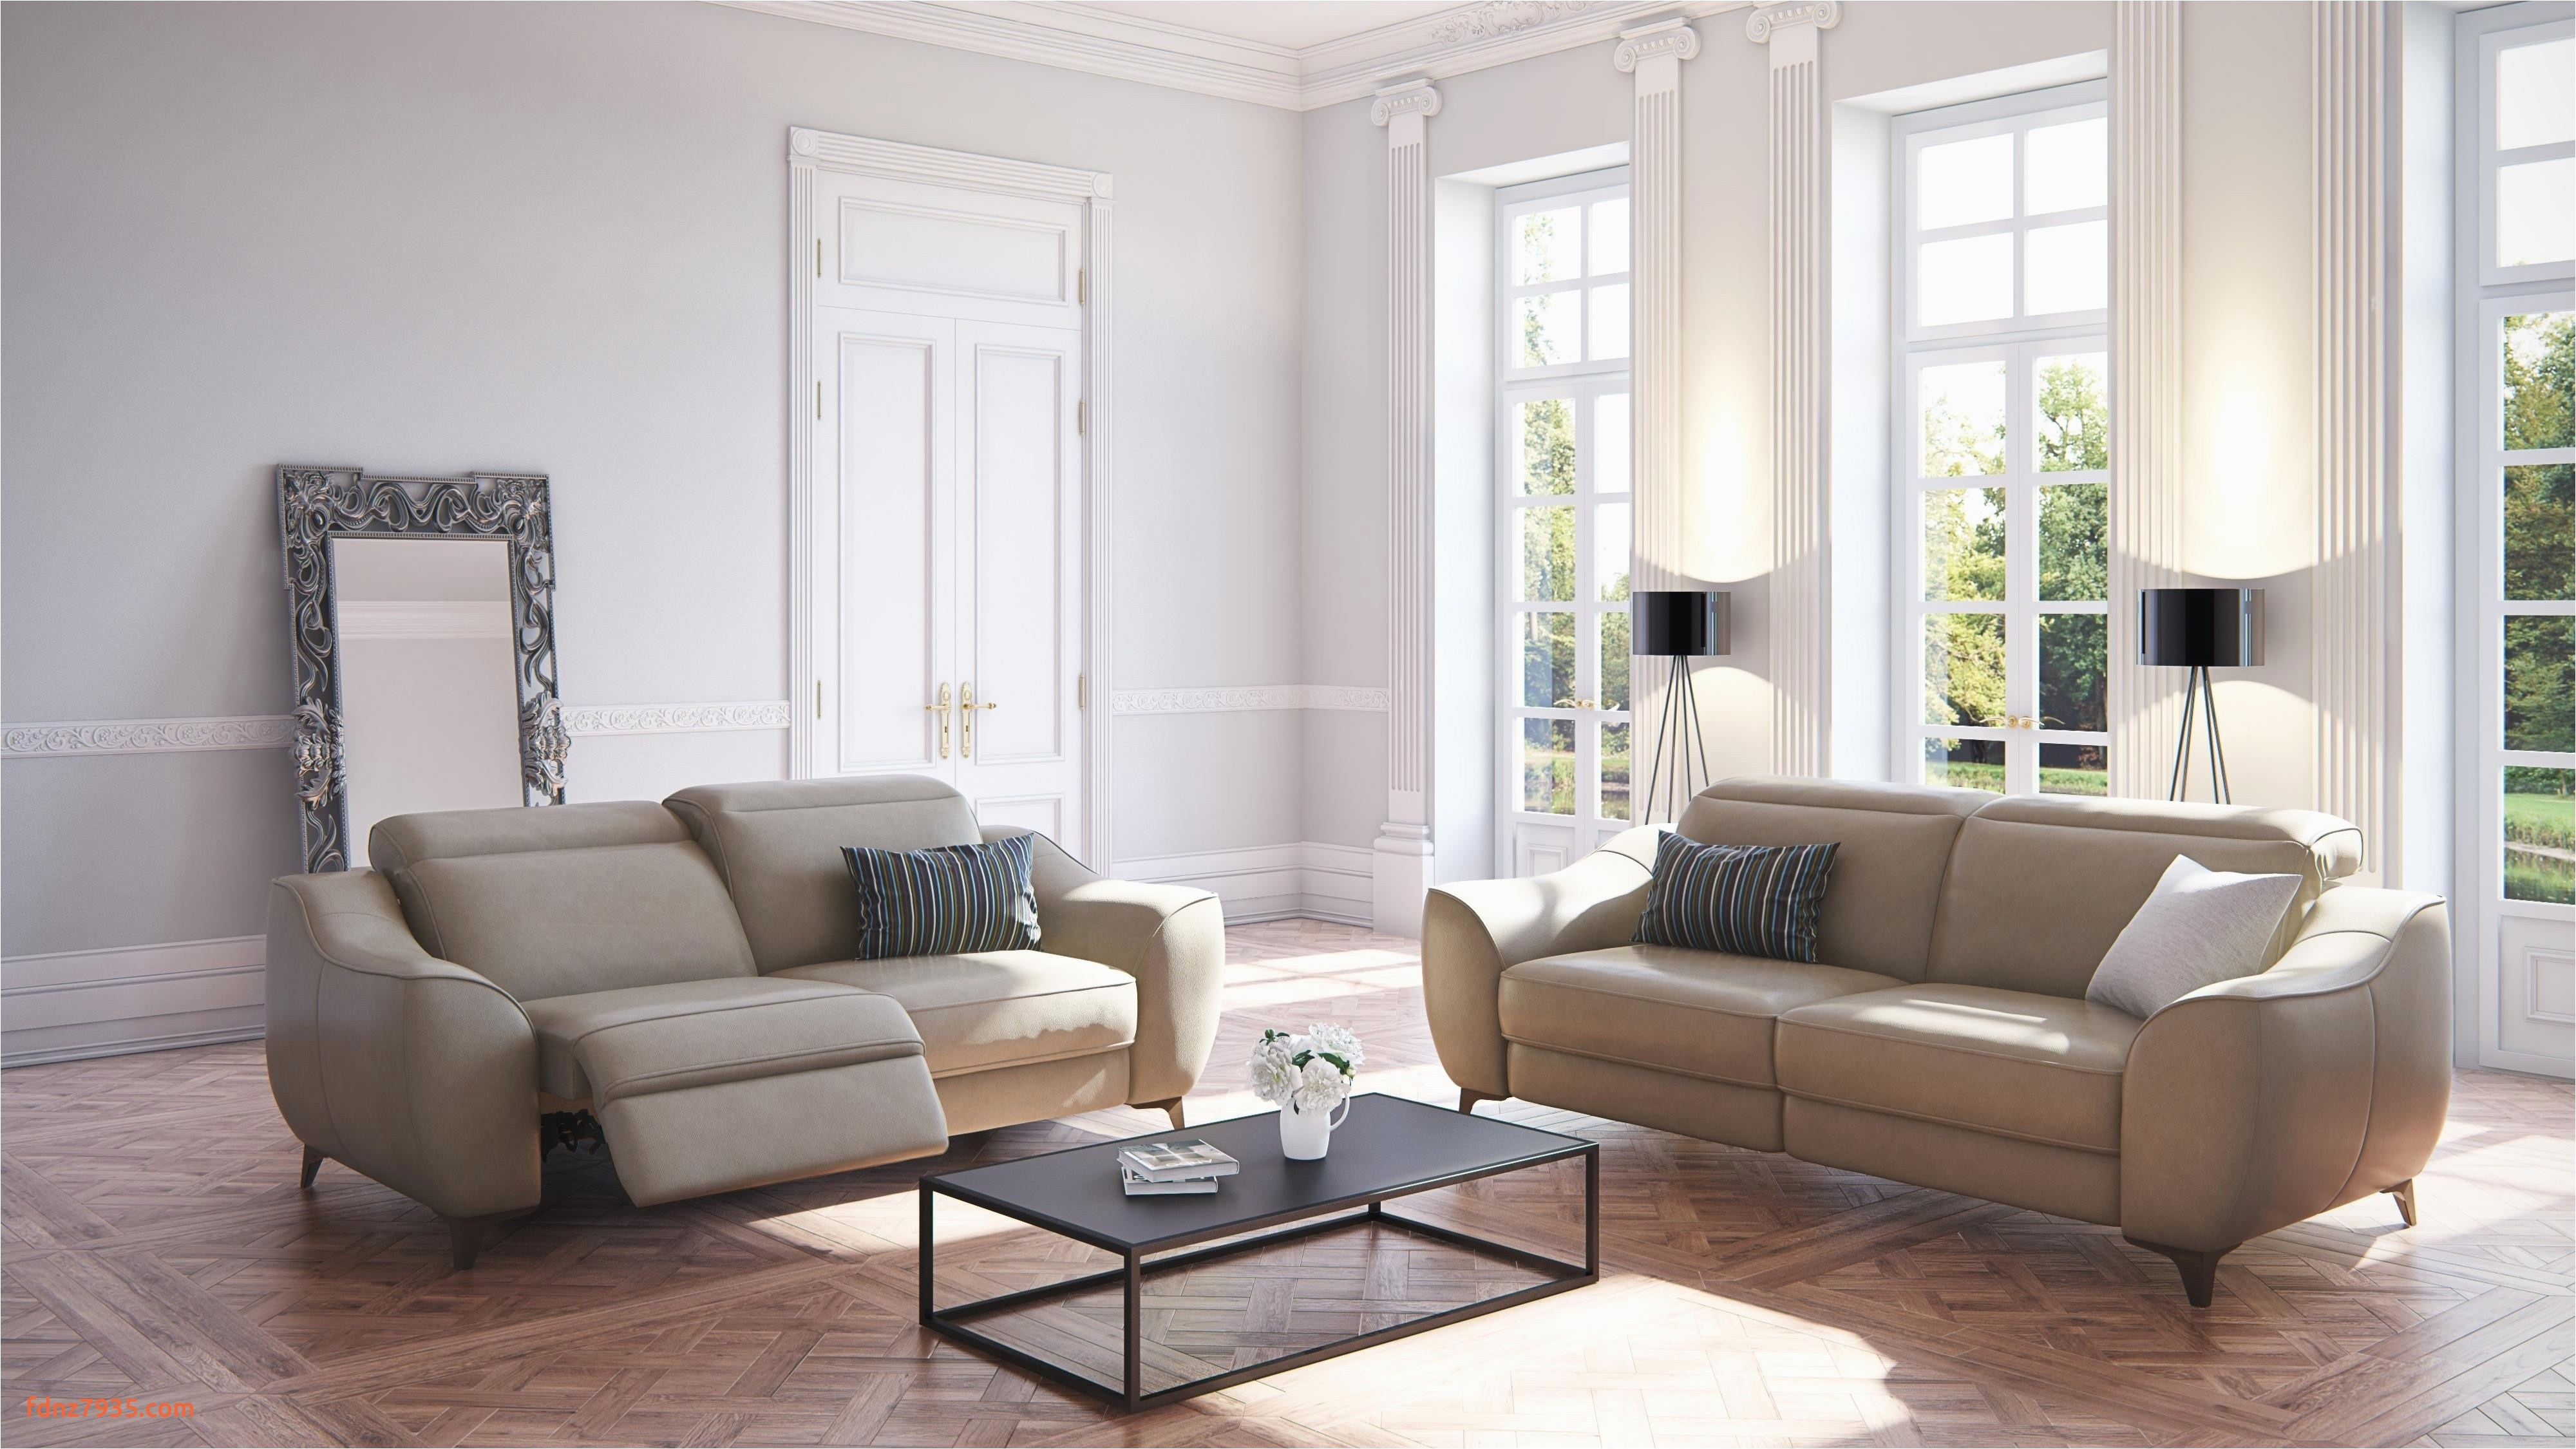 living room ideas with gray sofa beautiful furniture loveseat cushions awesome wicker outdoor sofa 0d patio